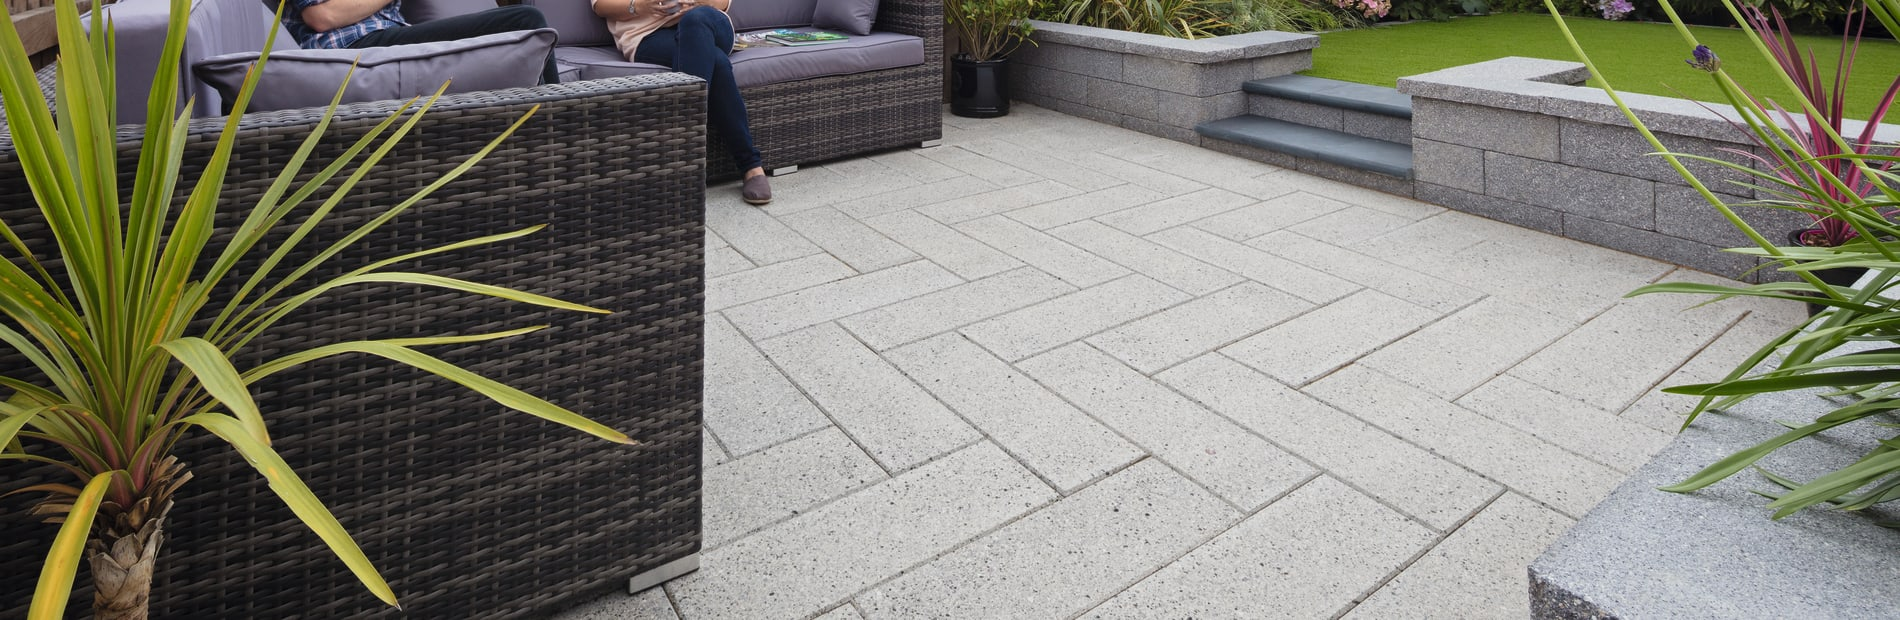 Argent® Smooth Paving hero image